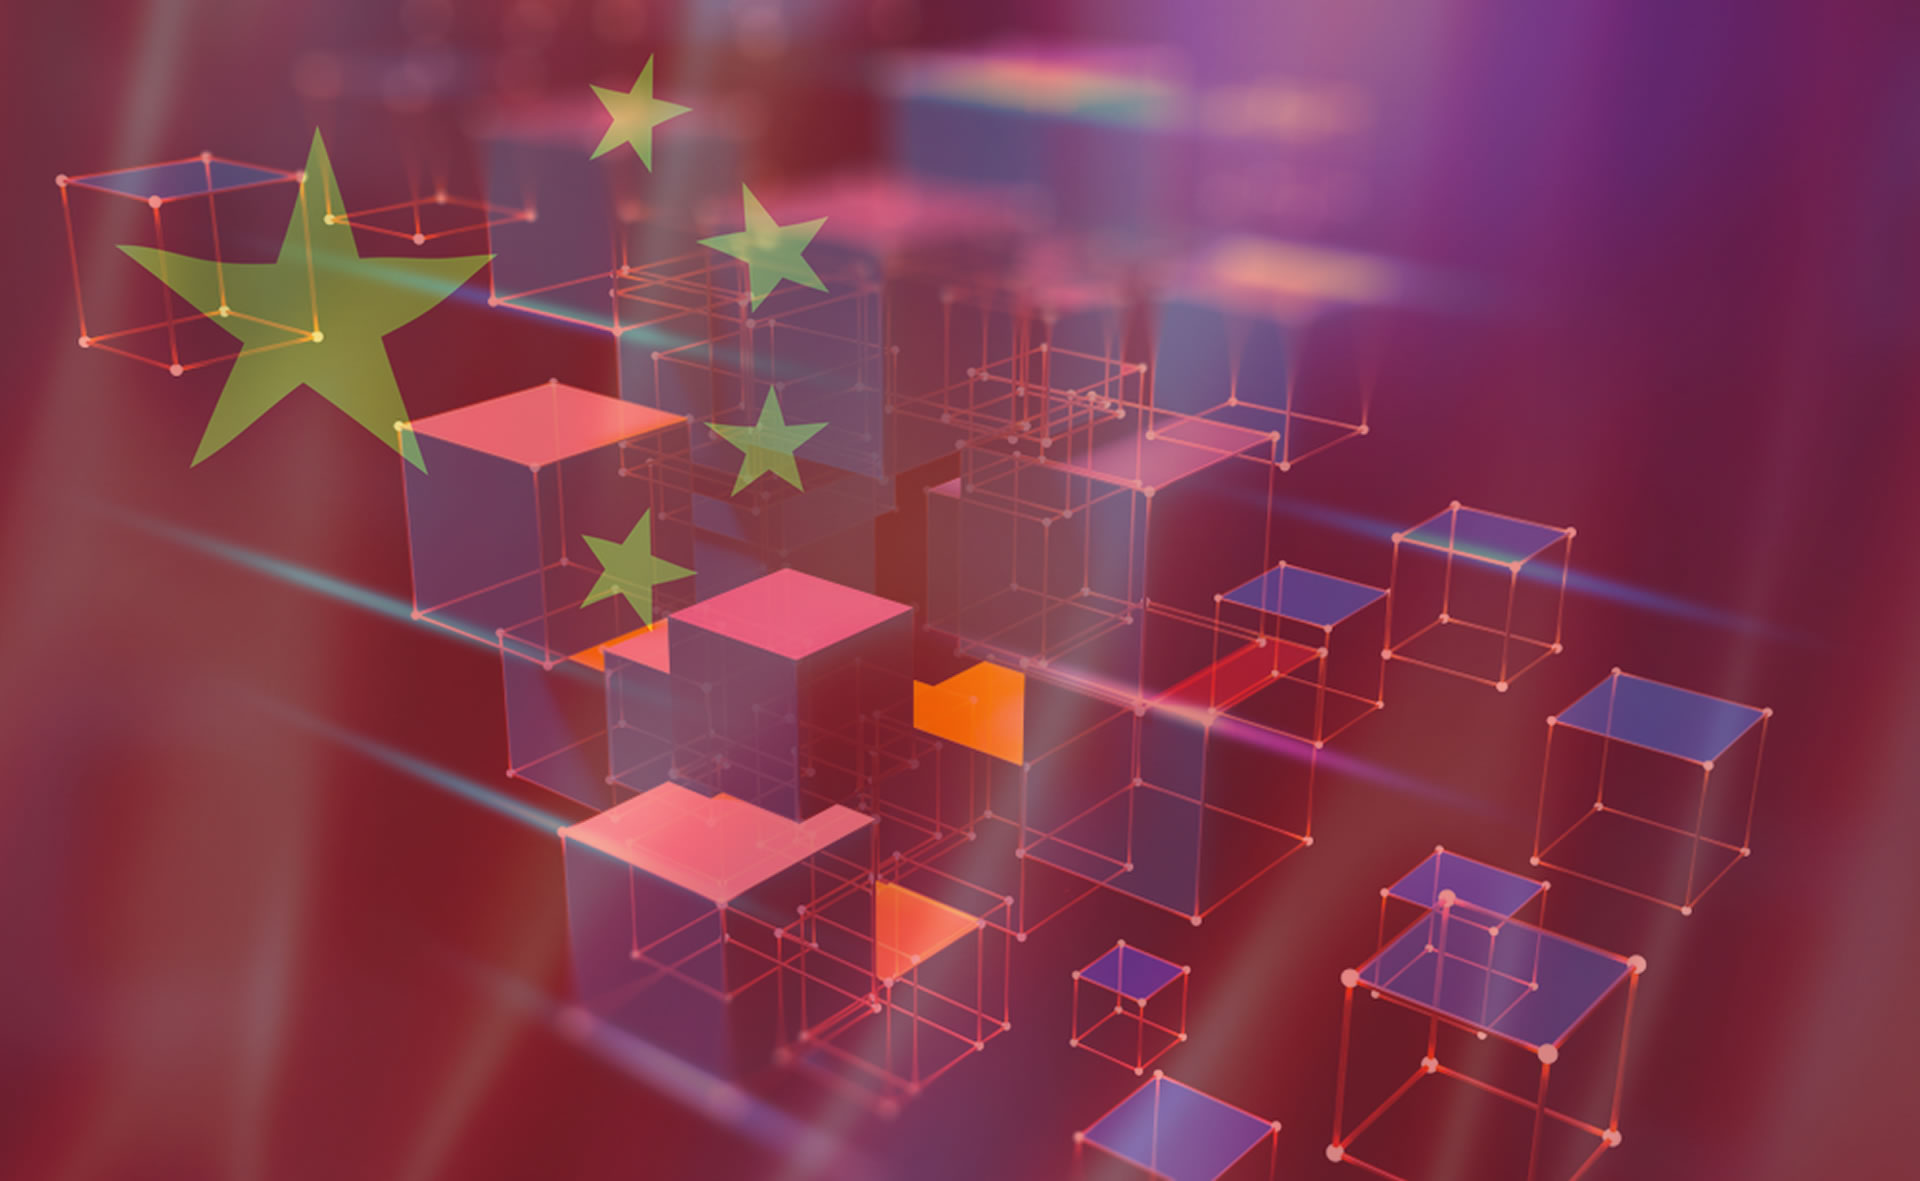 The Guangzhou government has allocated 1 billion yuan to develop the blockchain